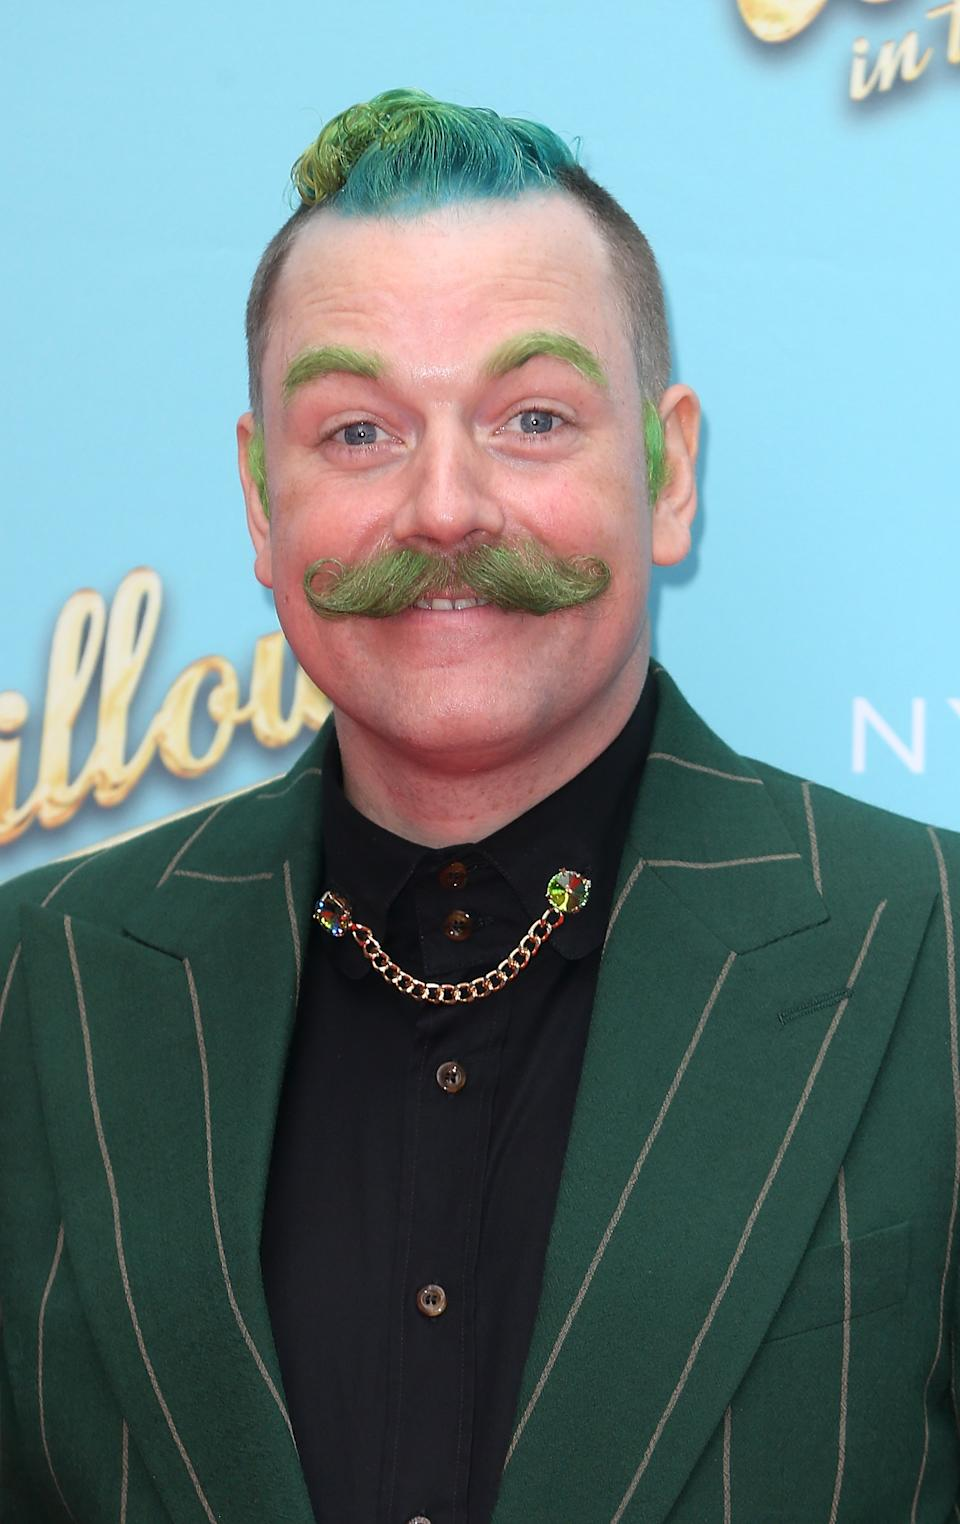 """LONDON, ENGLAND - JUNE 29: Rufus Hound attends the Gala performance of """"Wind In The Willows"""" at London Palladium on June 29, 2017 in London, England. (Photo by Danny Martindale/WireImage)"""